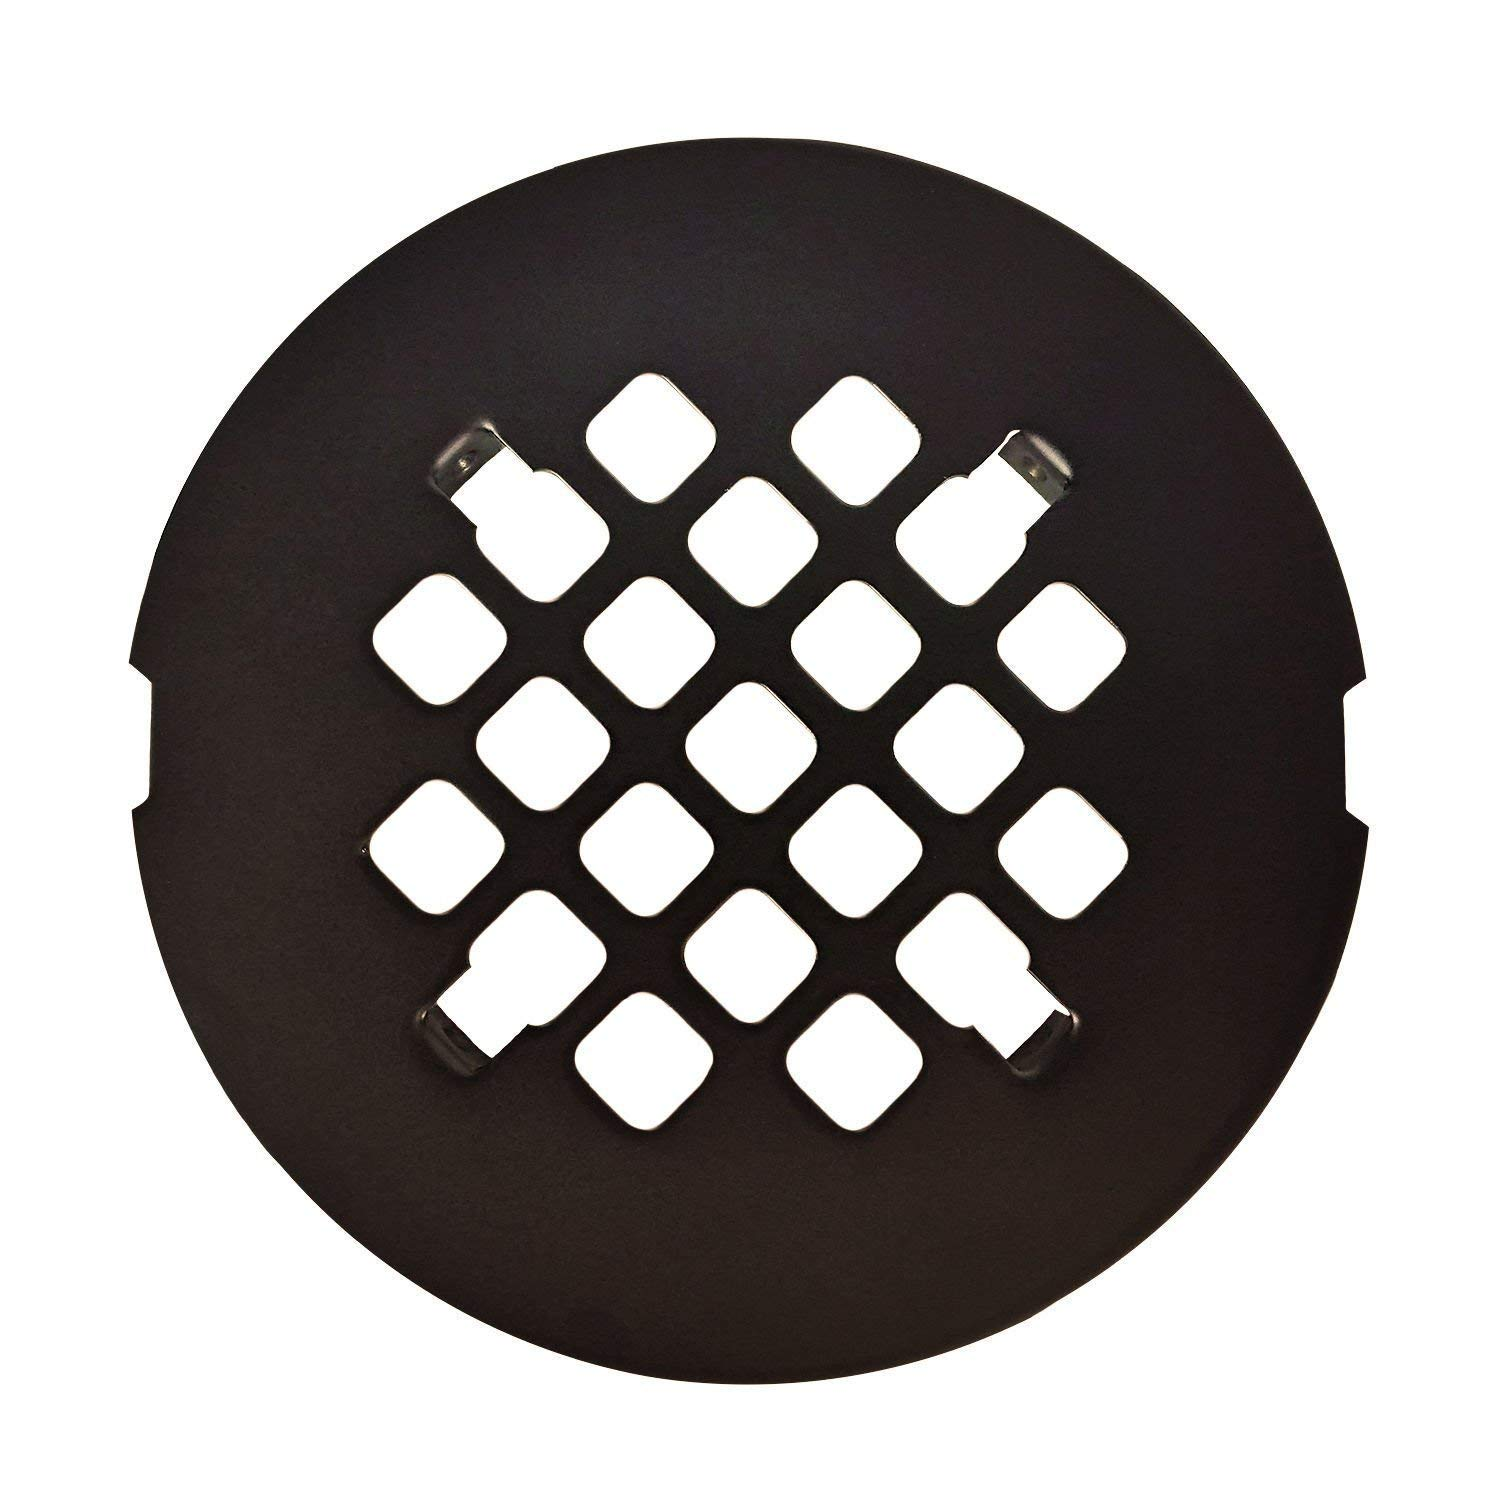 Peng Sheng Oil Rubbed Bronze Round Shower Drain Grate 4-1/4' Replacement Cover/Shower Strainer CN